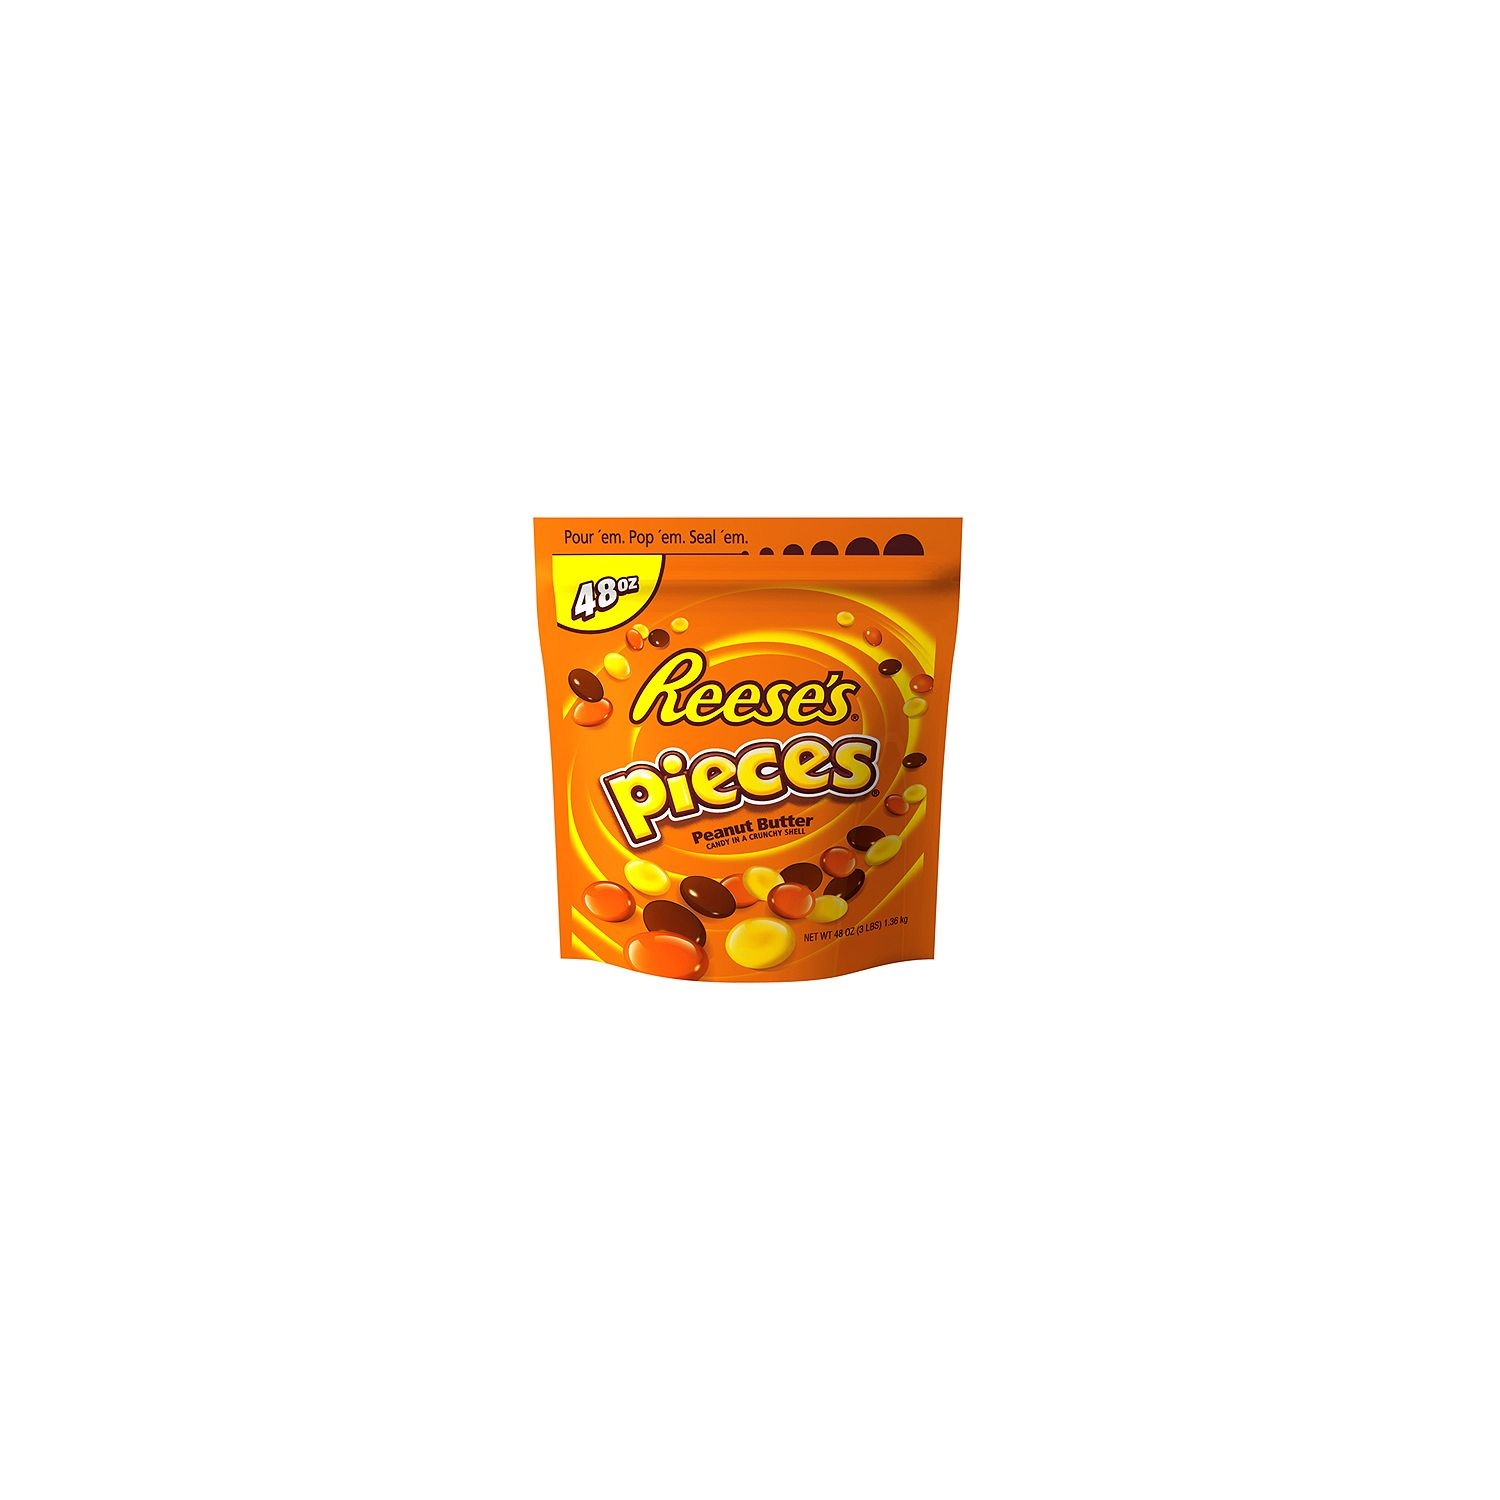 Reese's Pieces Peanut Butter Candy, 48 Oz